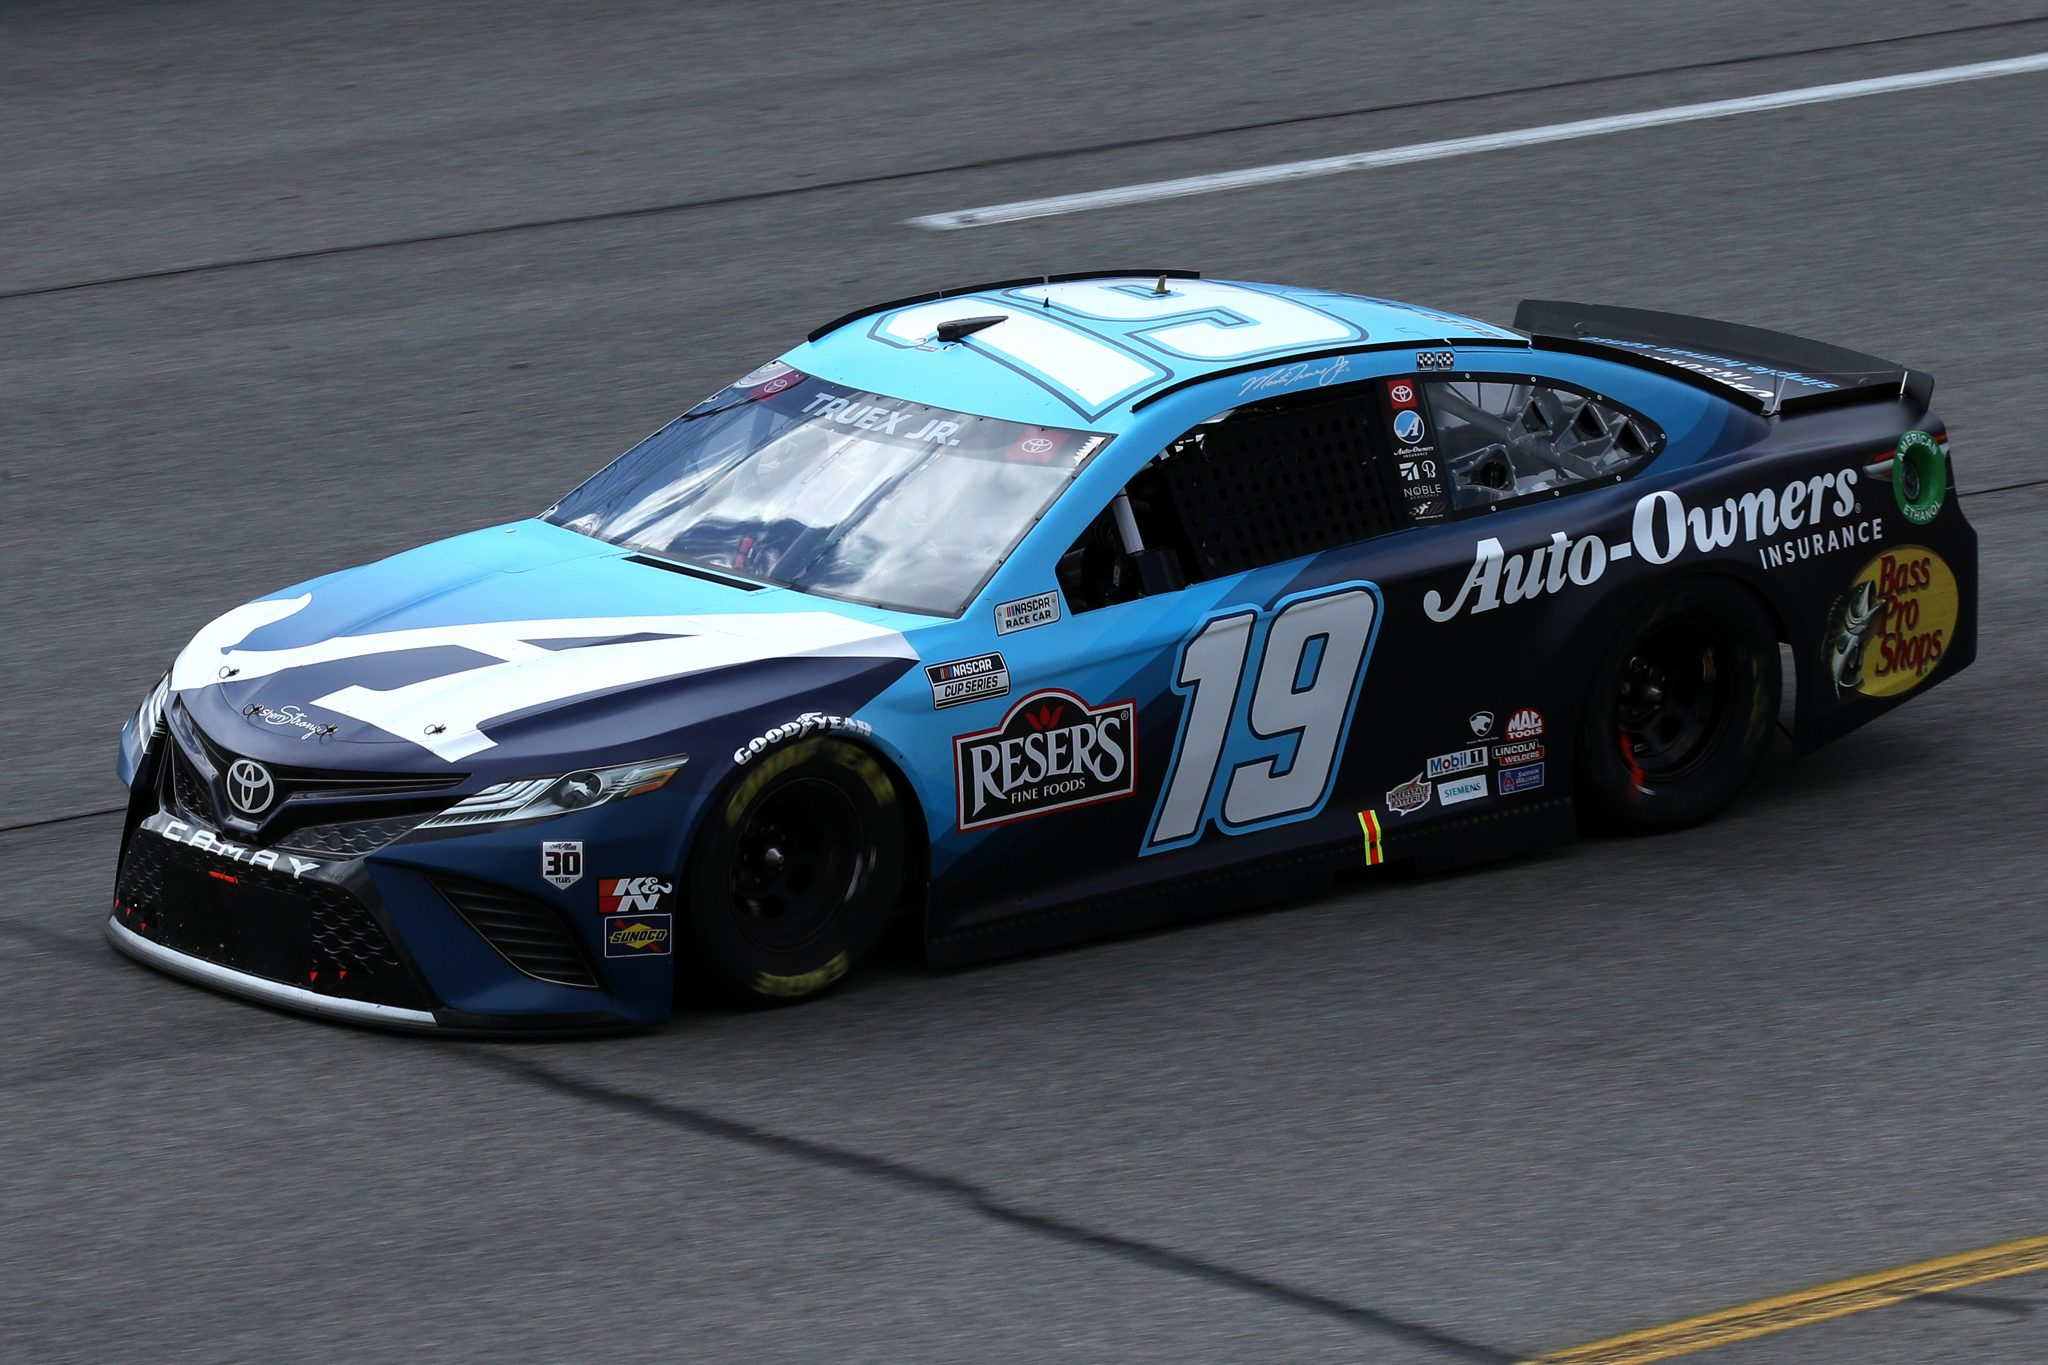 RICHMOND, VIRGINIA - APRIL 18: Martin Truex Jr., driver of the #19 Auto-Owners Insurance Toyota, drives during the NASCAR Cup Series Toyota Owners 400 at Richmond Raceway on April 18, 2021 in Richmond, Virginia. (Photo by Sean Gardner/Getty Images) | Getty Images